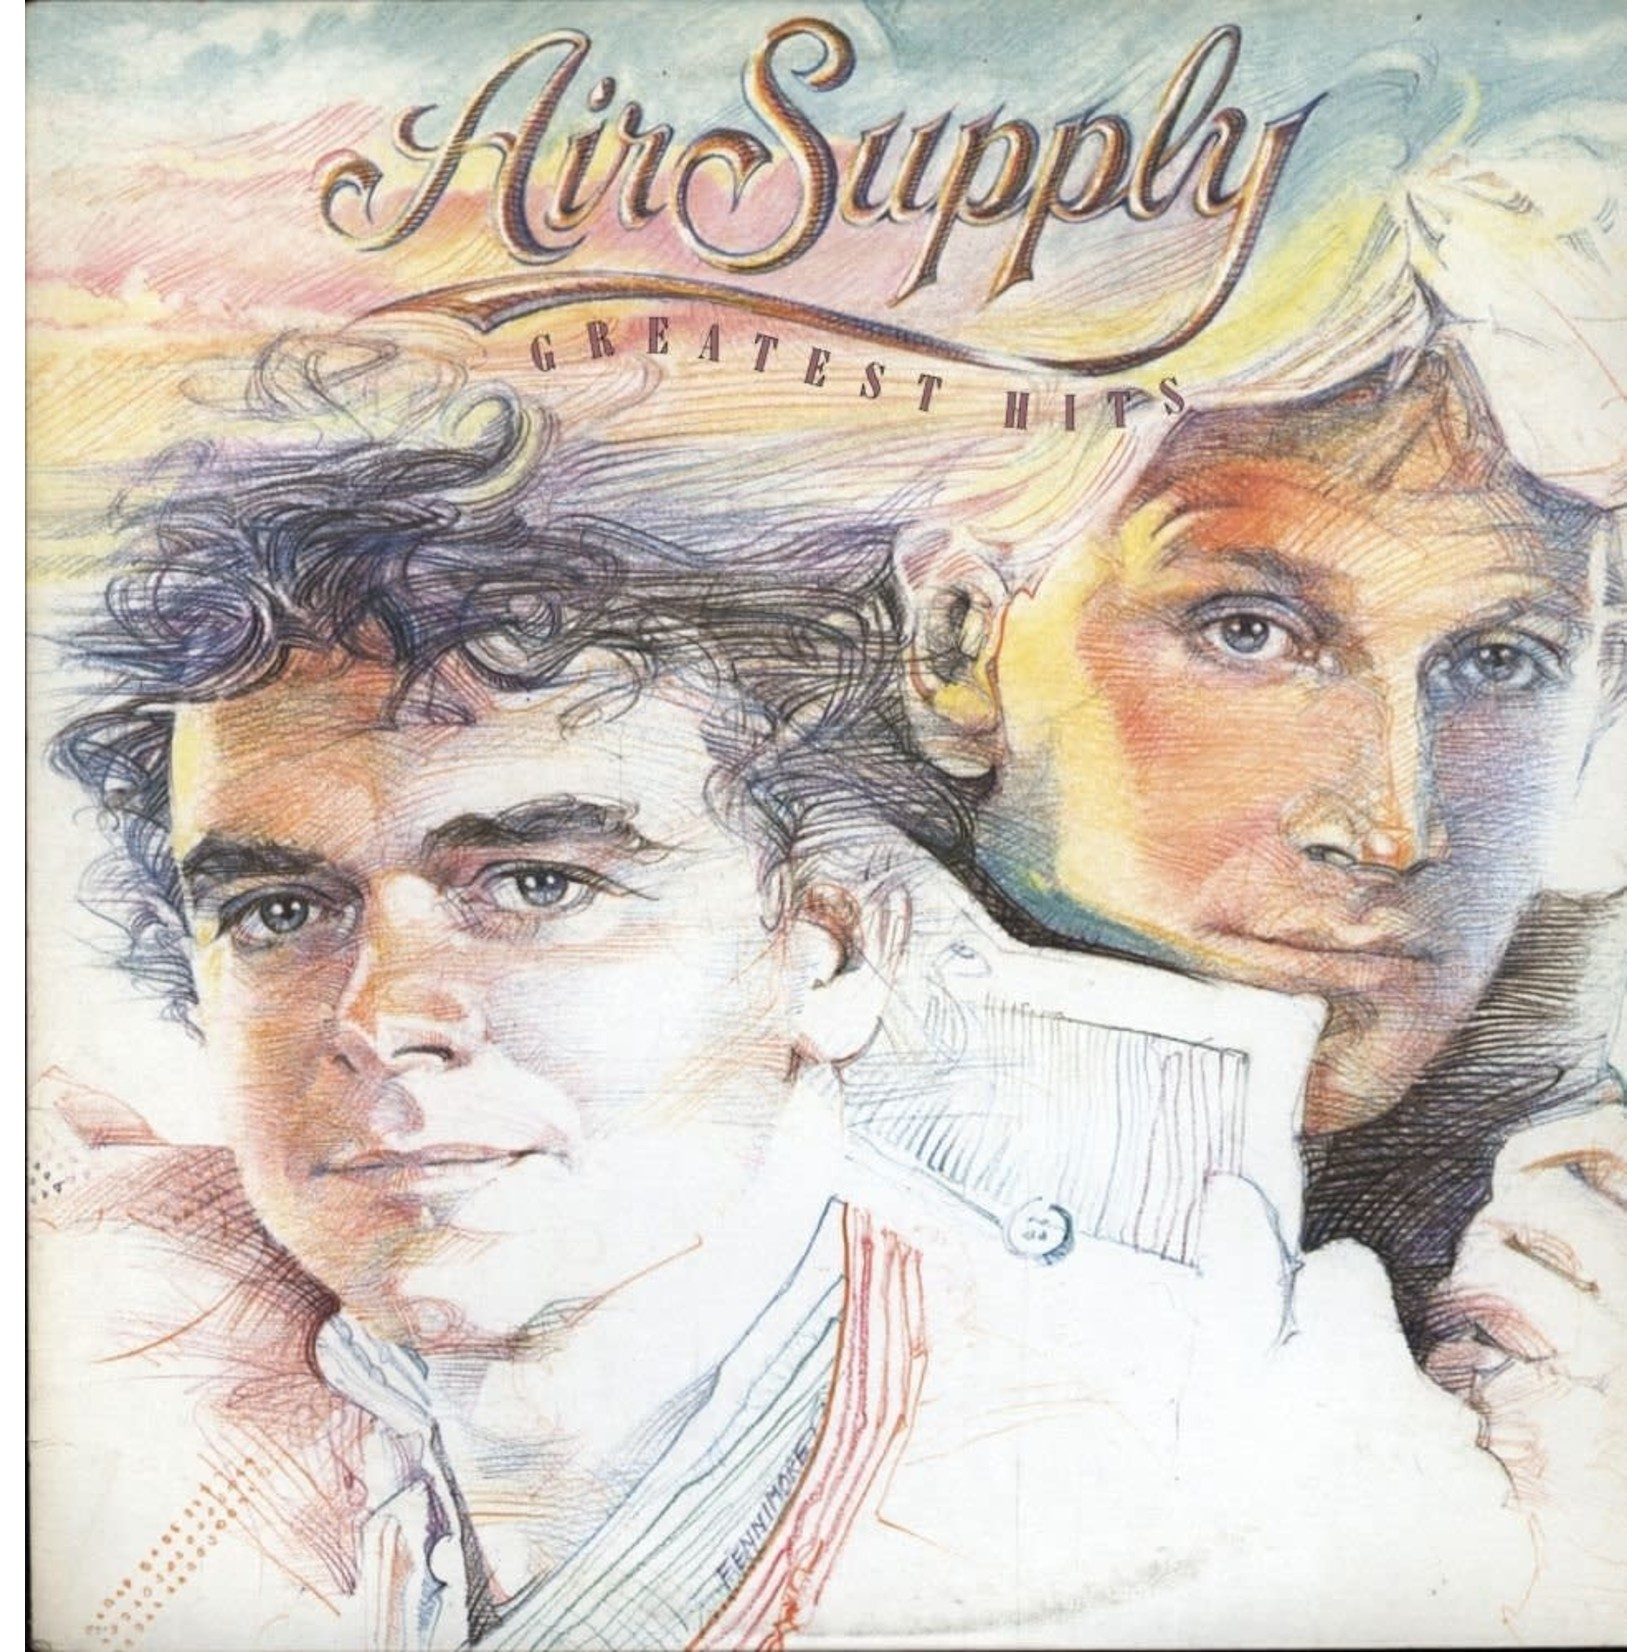 [Vintage] Air Supply: Greatest Hits